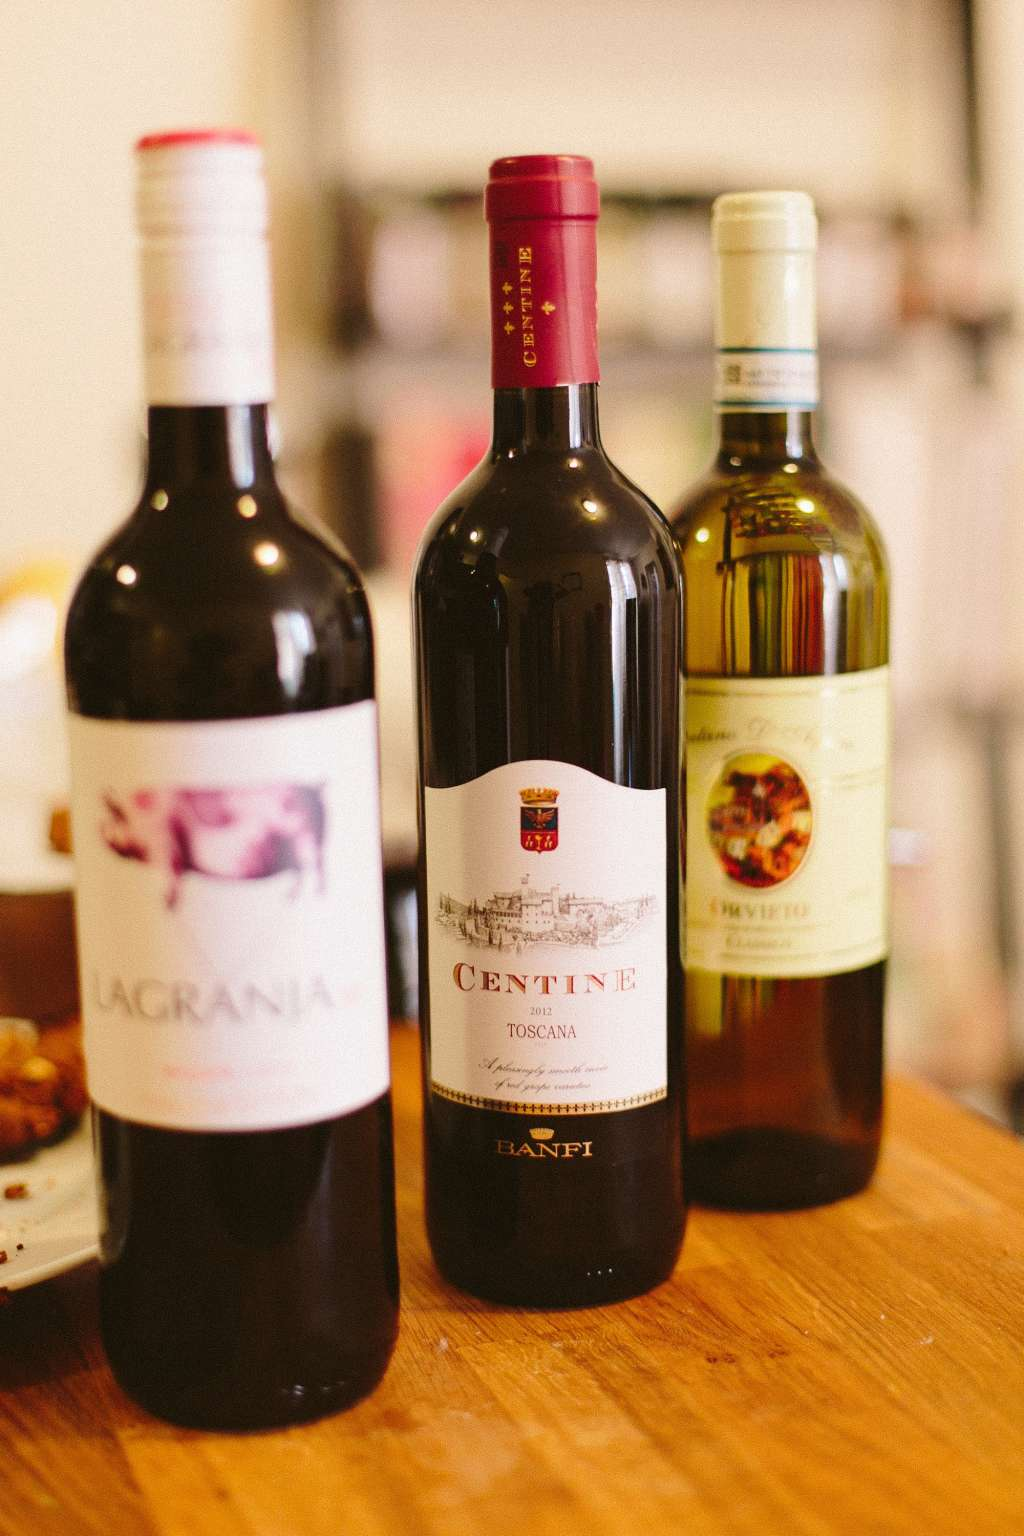 The Best Cheap Trader Joe's Wines to Drink With Italian Food